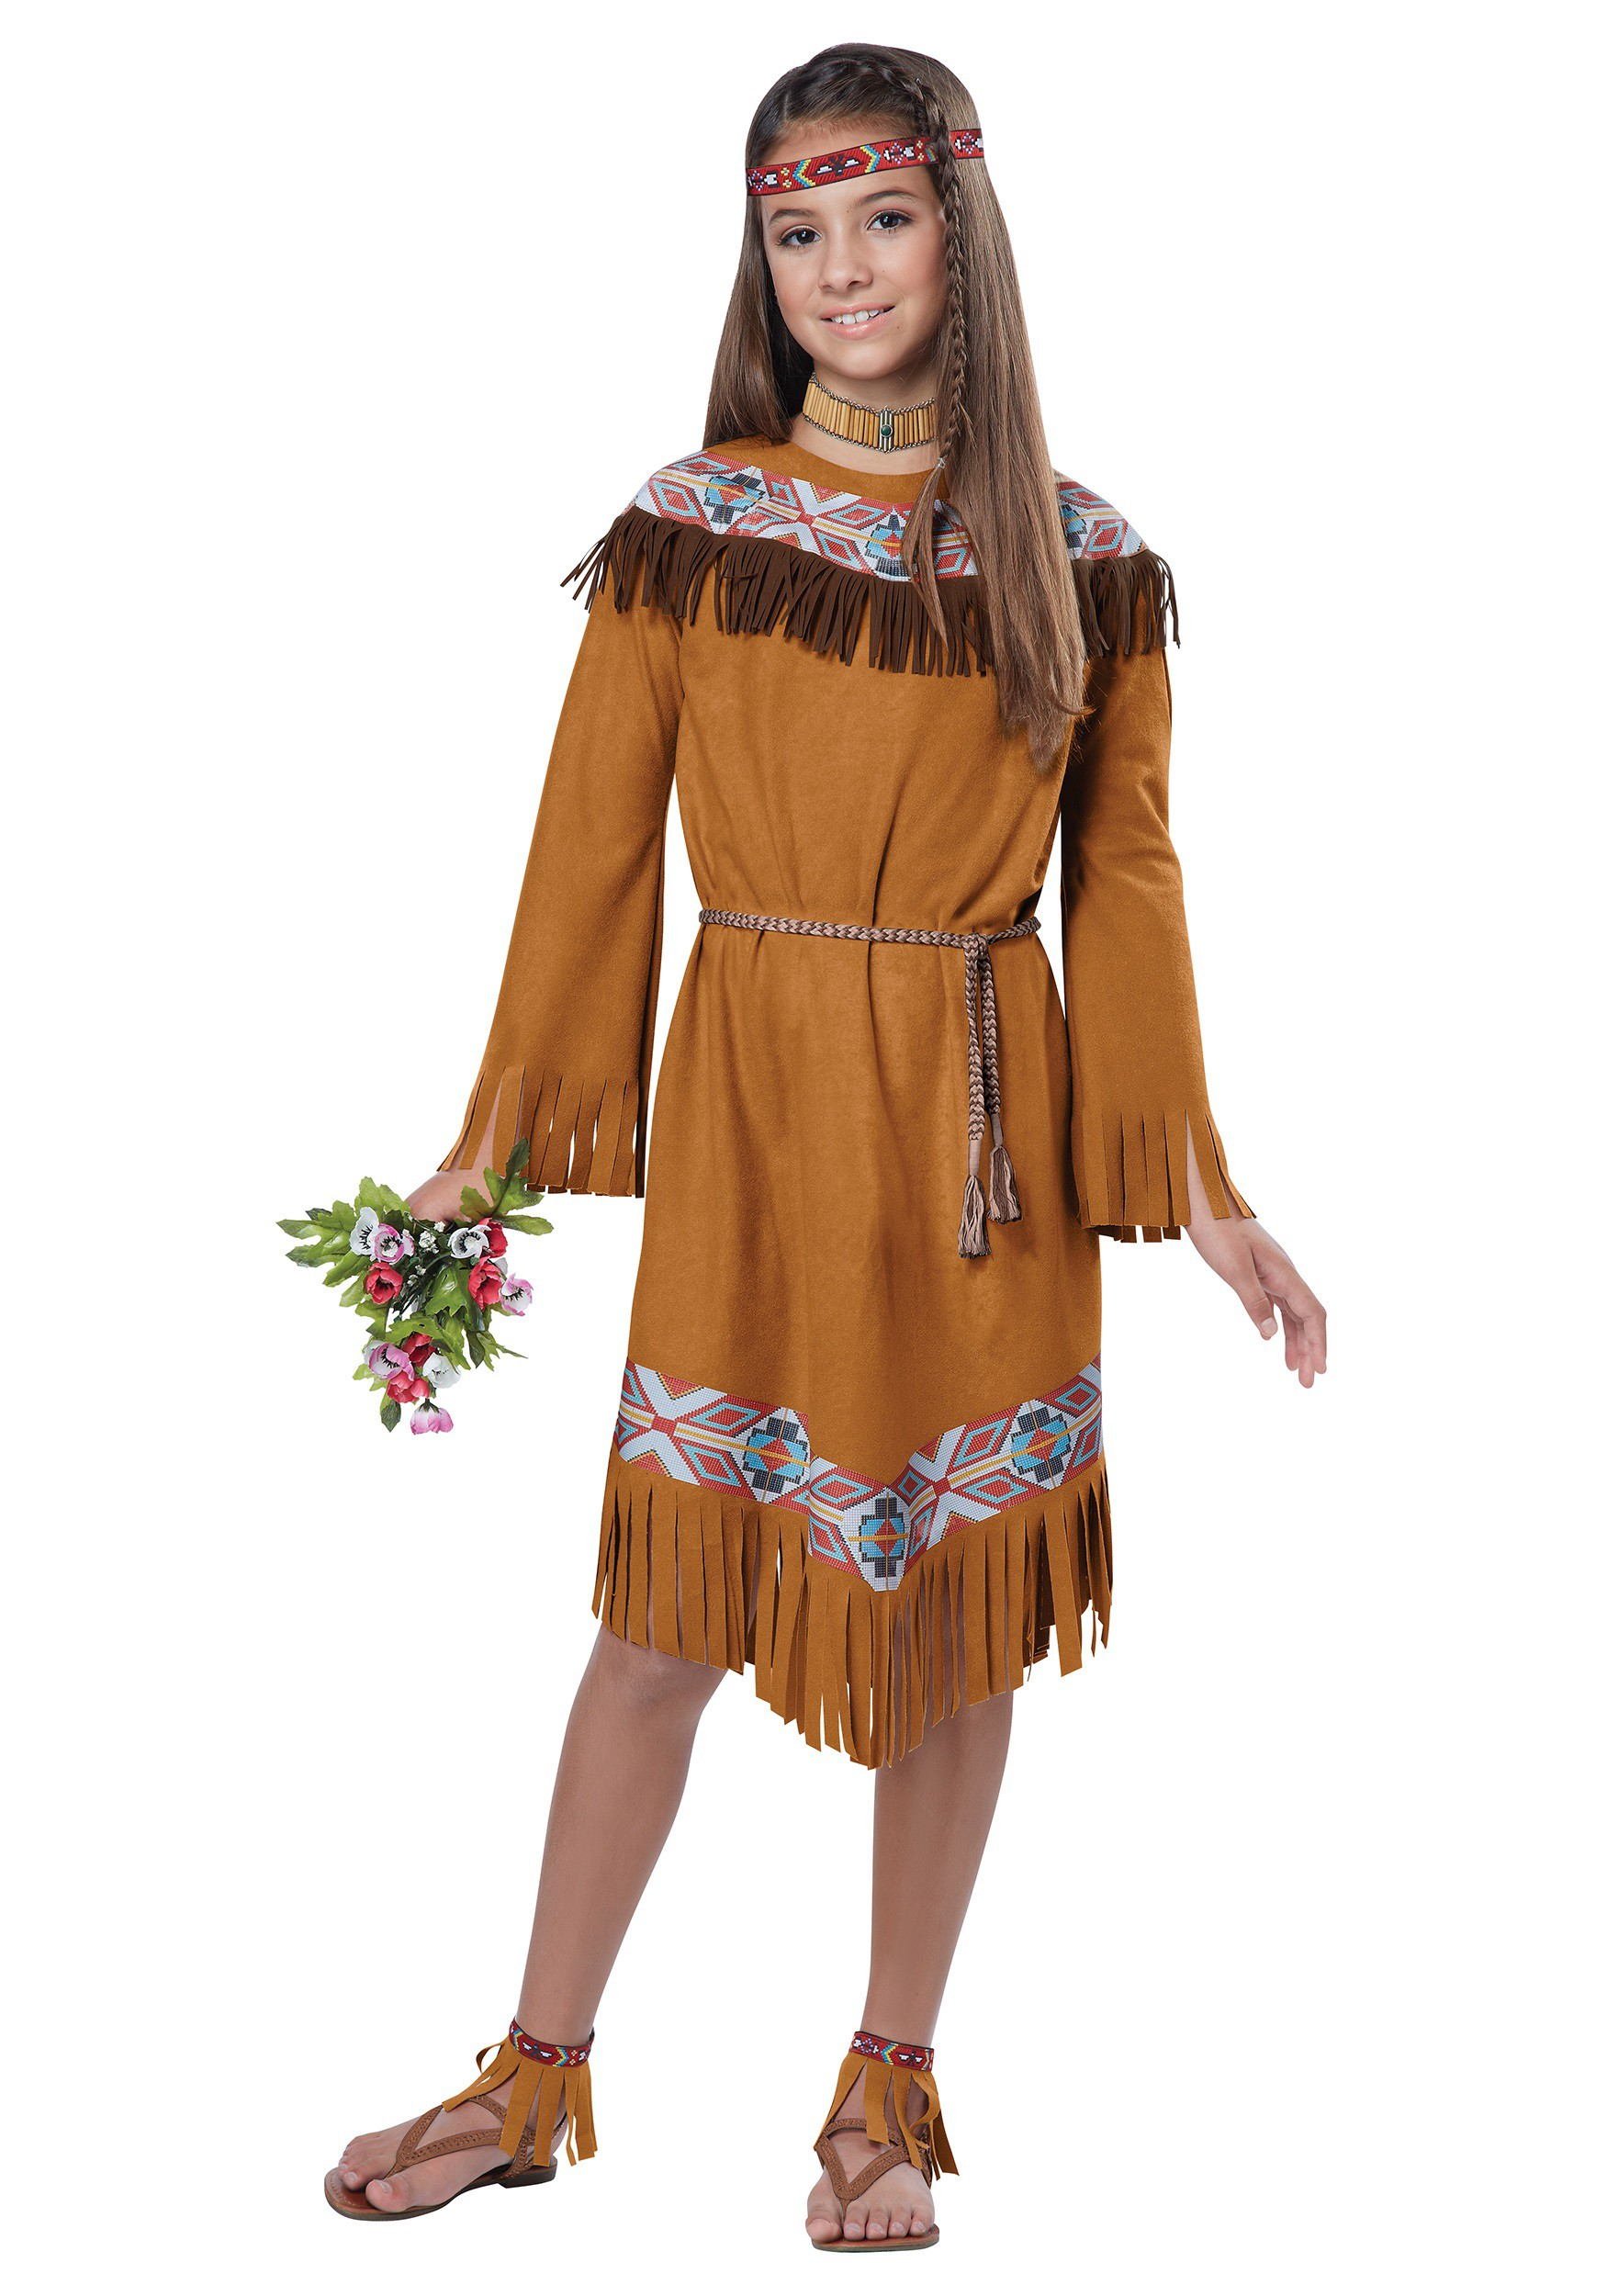 Child Classic Indian Girl Costume  sc 1 st  Halloween Costumes & Child Classic Native American Girl Costume